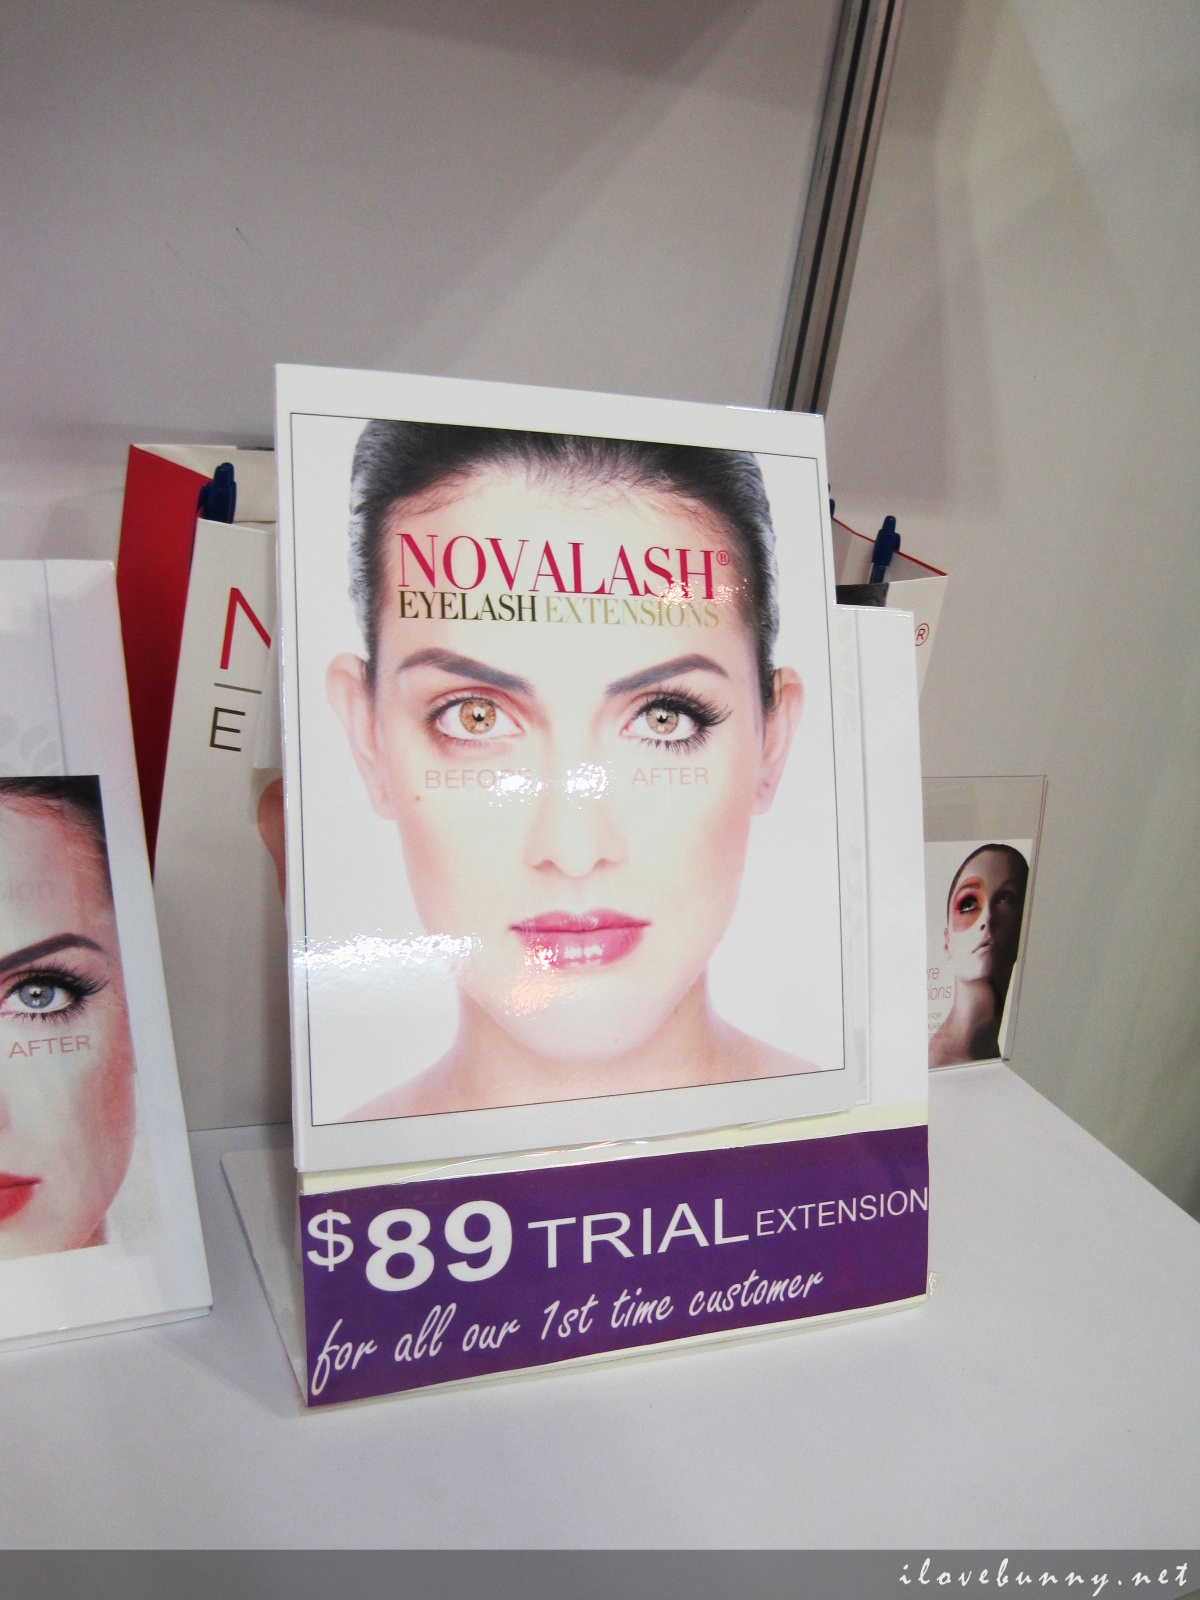 Beauty Review: Novalash and Exclusive Promotion for Honeyz Belles